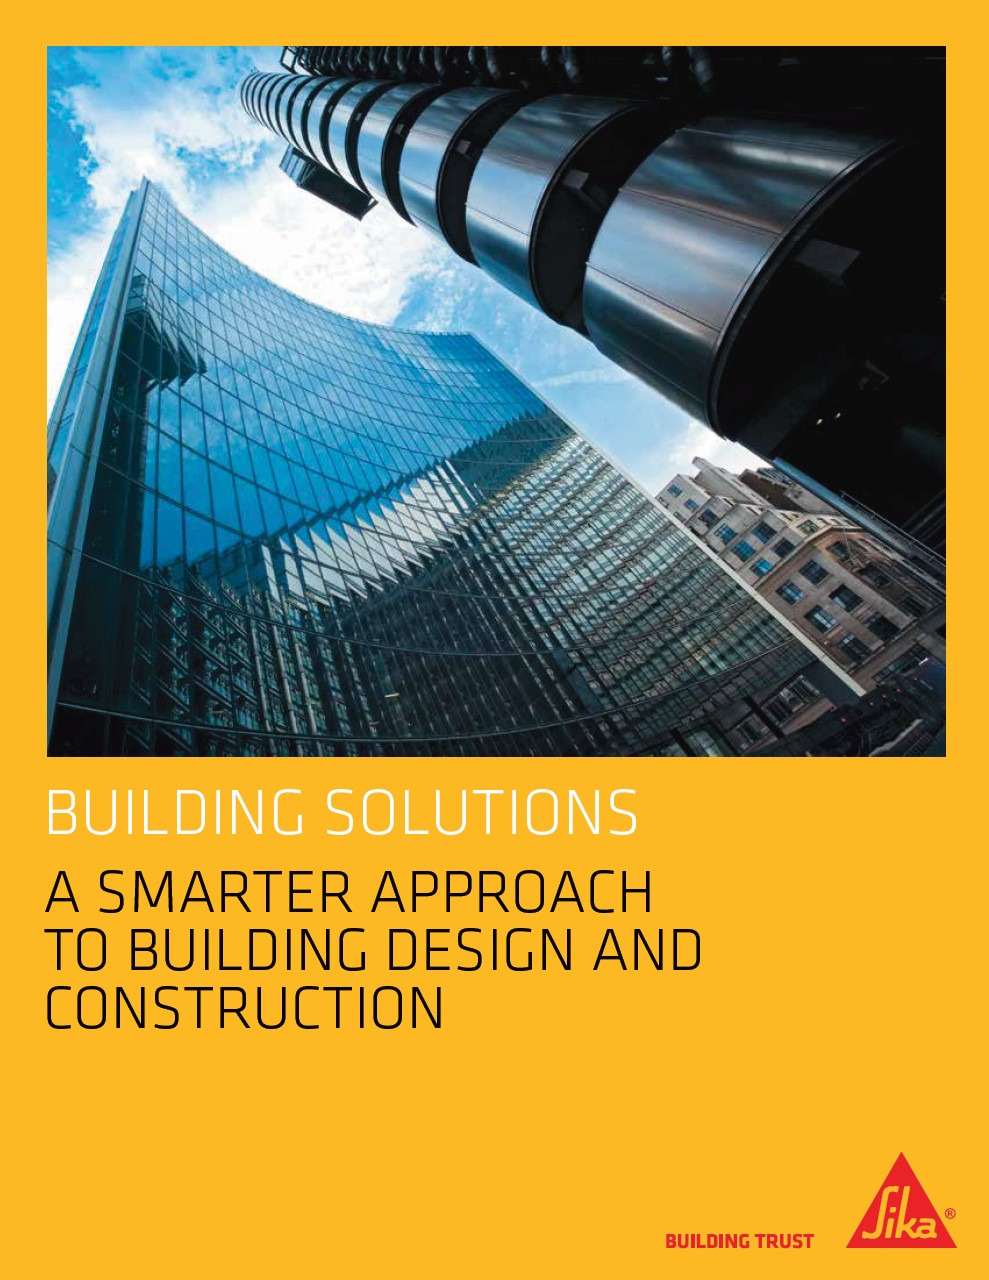 Sika Building Solutions